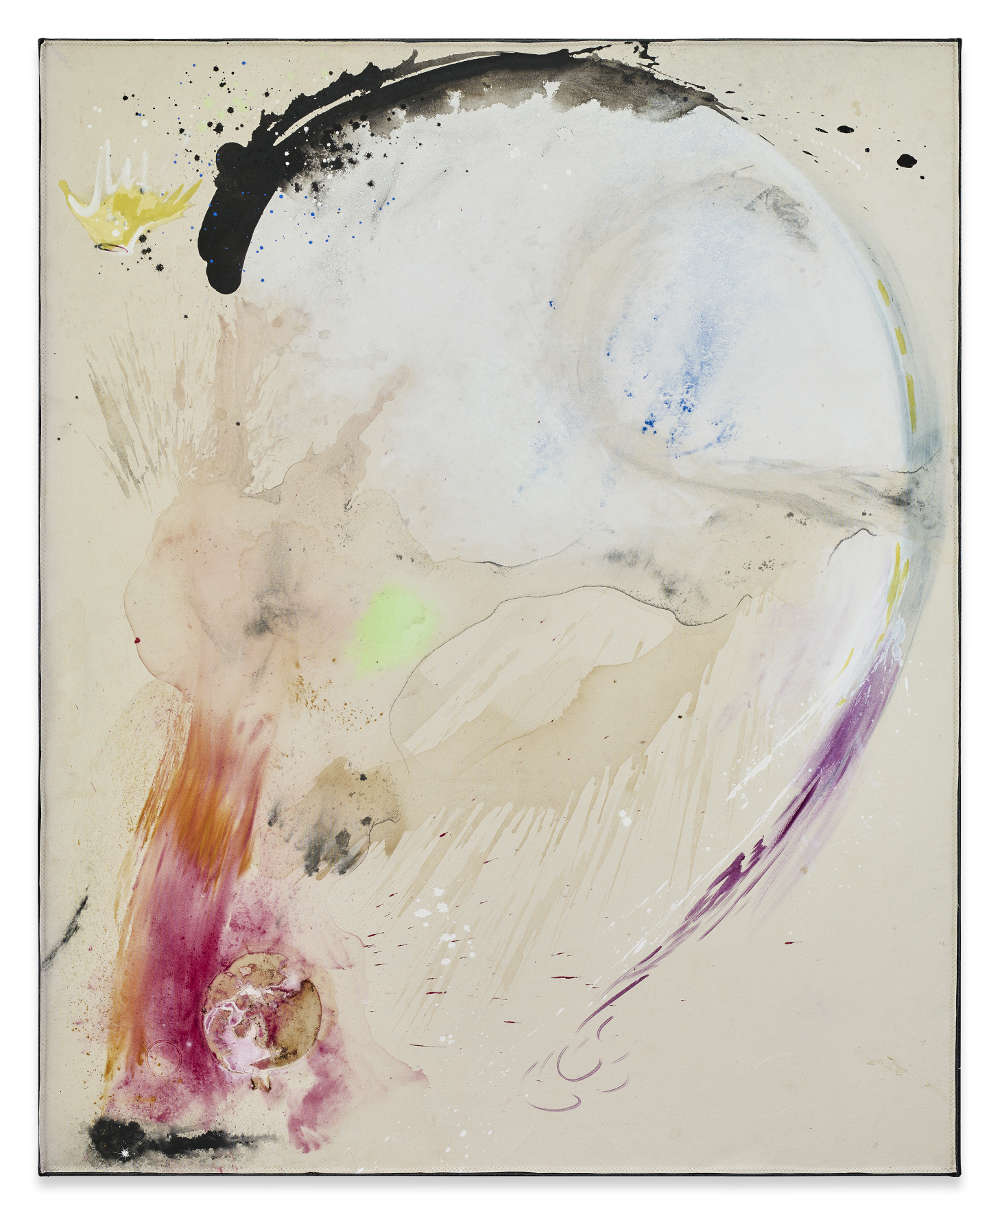 Lucy Dodd, The Princess, 2018. Cochineal, earth from Andalusia, squid ink, hematite, charcoal, SCOBY, azurite and acrylic 204,5 x 167,6 cm 80 1/2 x 66 inches © Lucy Dodd. Courtesy of Sprüth Magers and David Lewis Gallery, New York. Photography by Stephen White